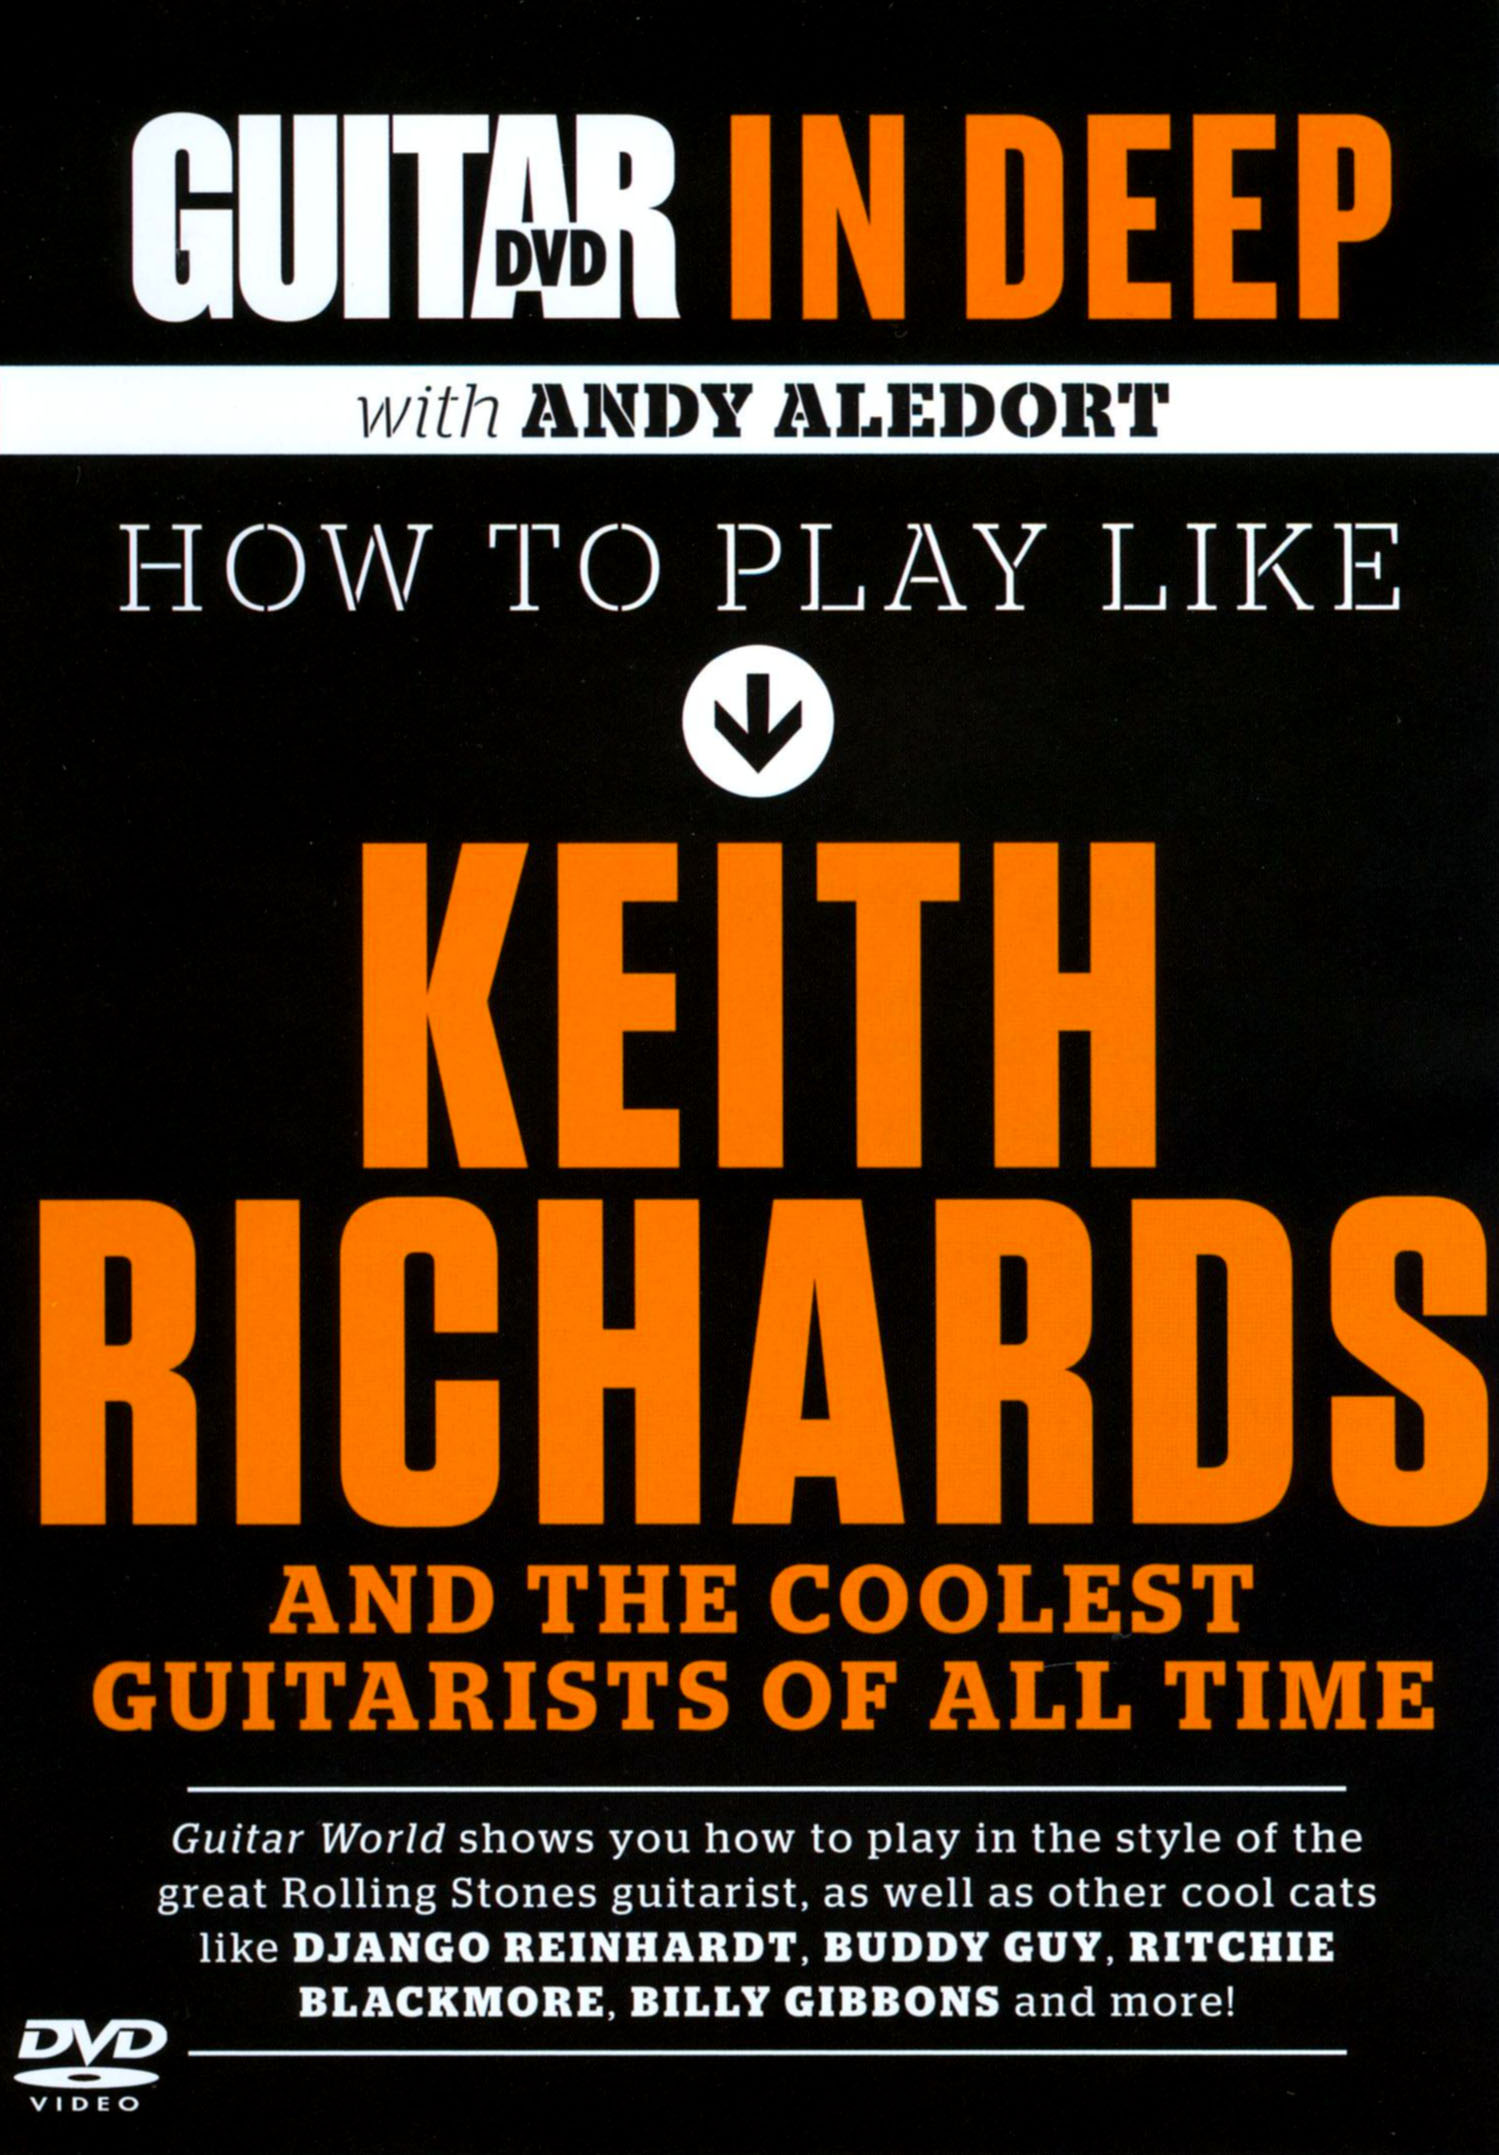 Guitar World In Deep: How to Play Like Keith Richards